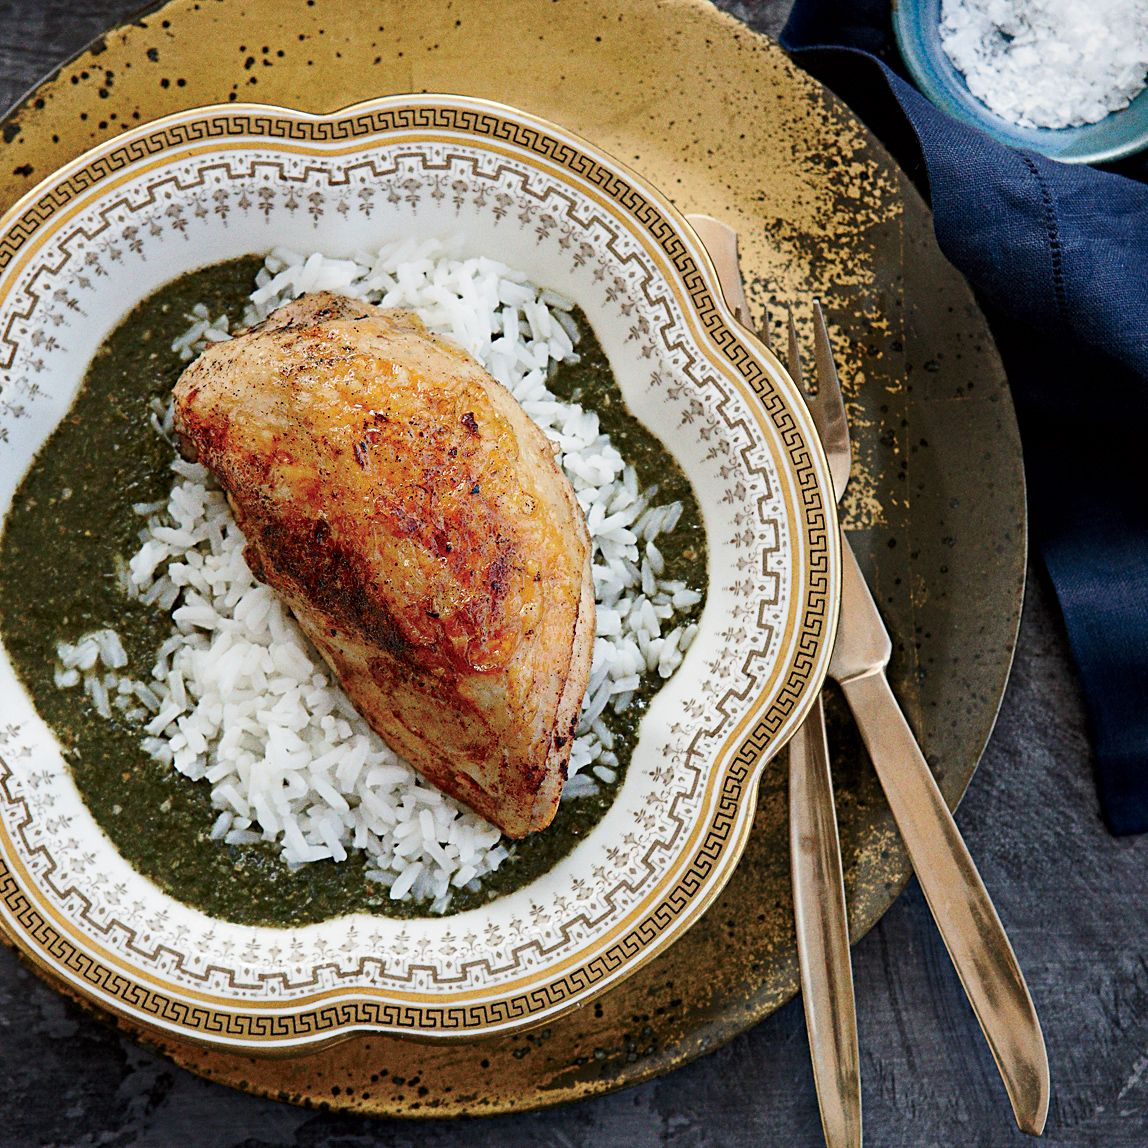 Molokhia with spiced chicken recipe egyptian recipes egyptian in this egyptian recipe chicken is poached to make a broth for cooking a dark forumfinder Images